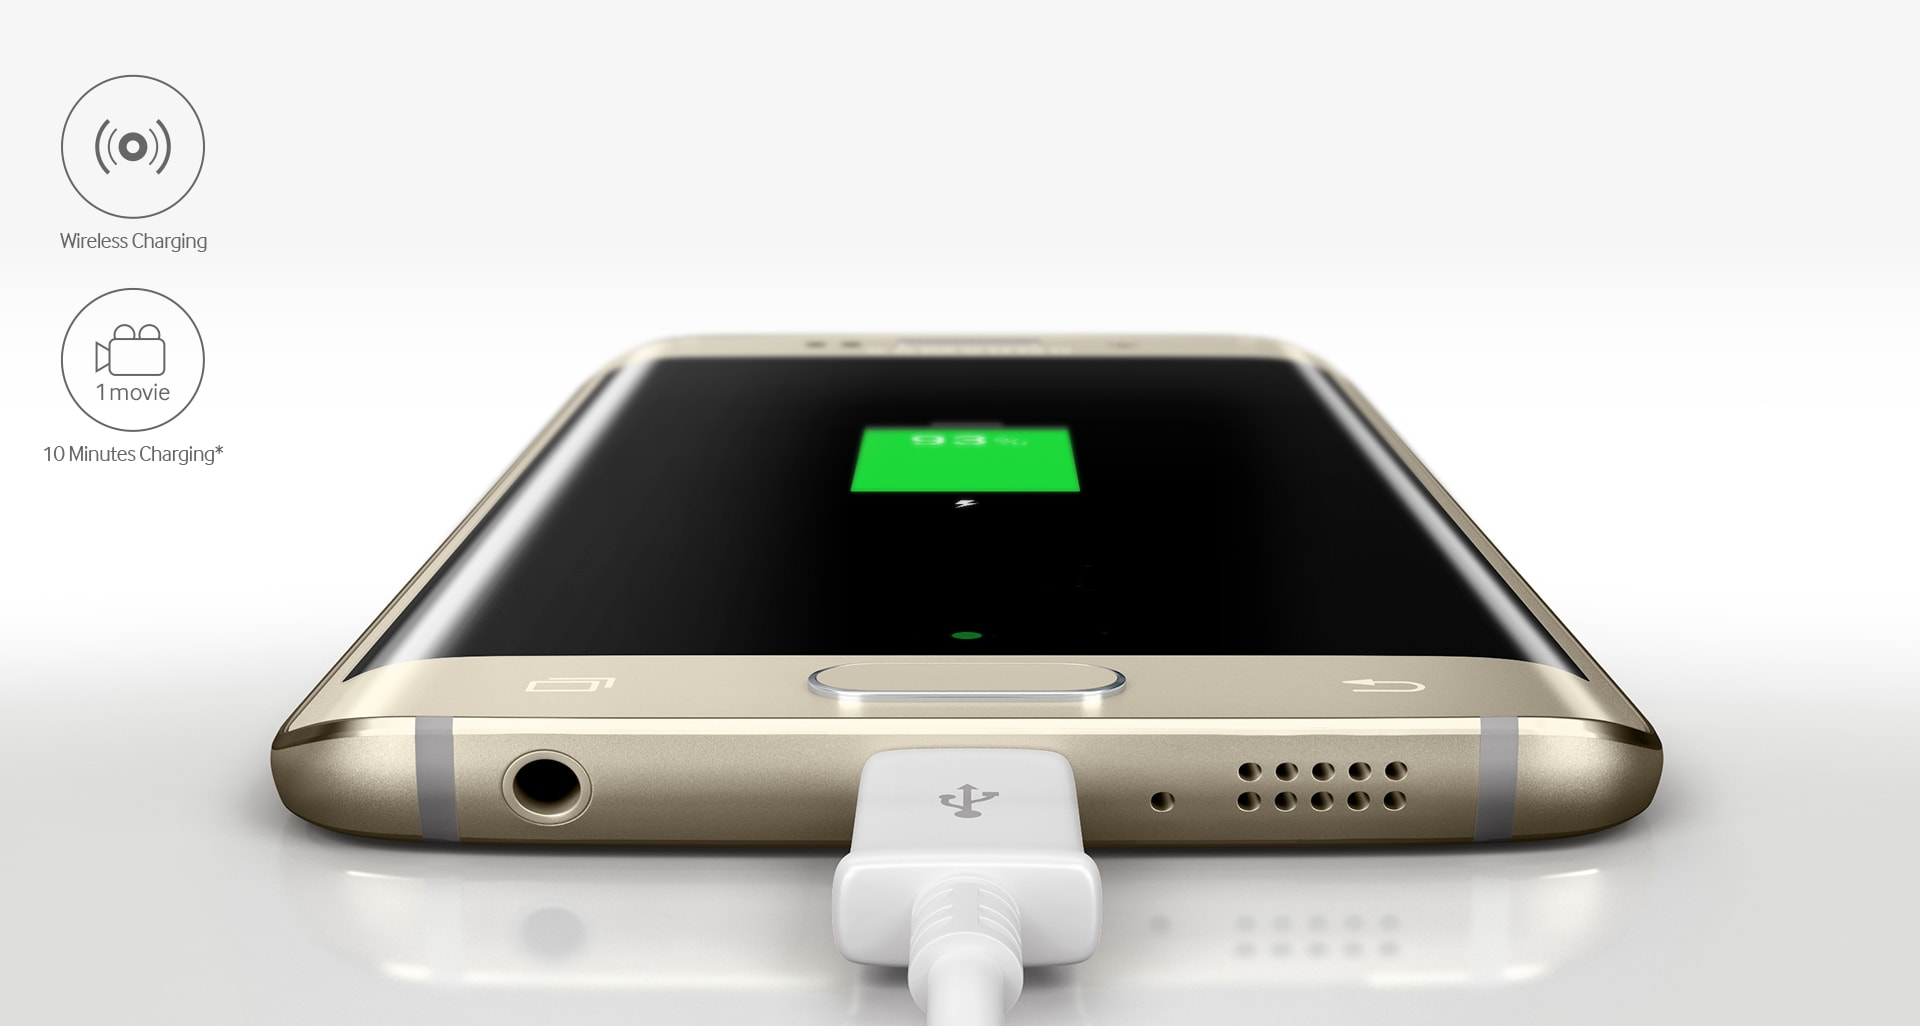 Galaxy-S6-Edge-not-quick-charging